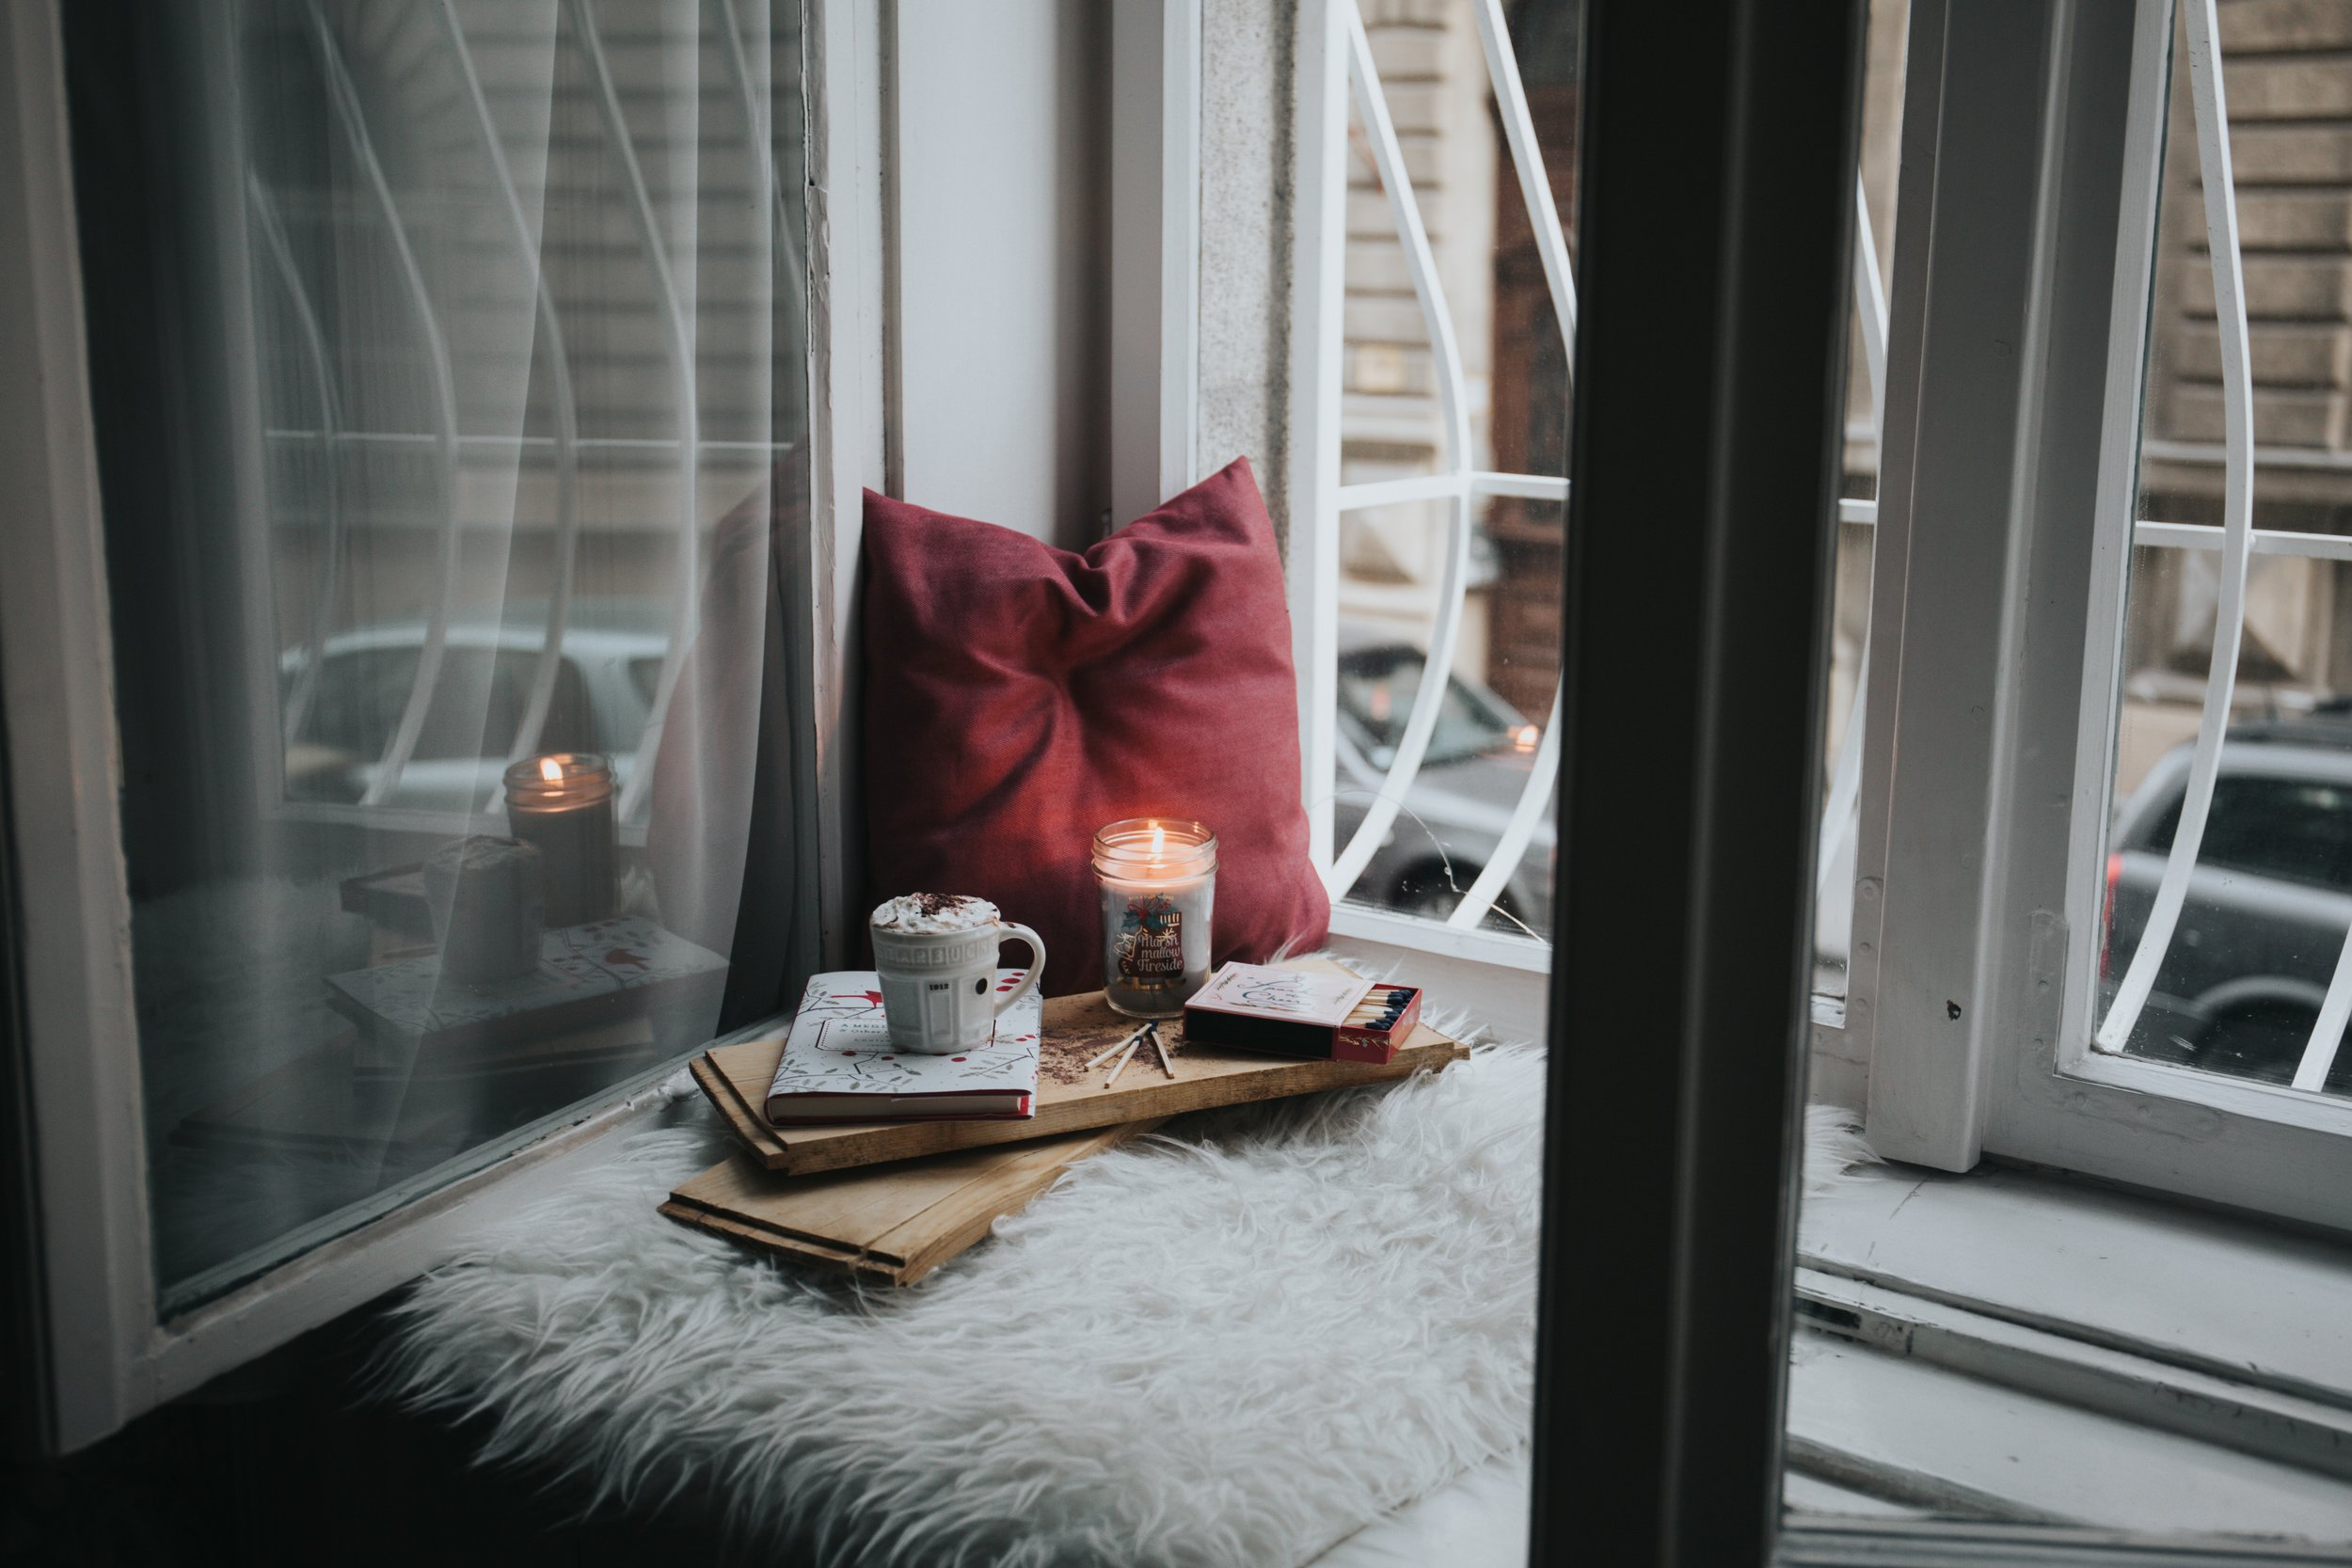 Dolce Far Niente: What It Is and Why You Need Some | BlackGirlBliss.com